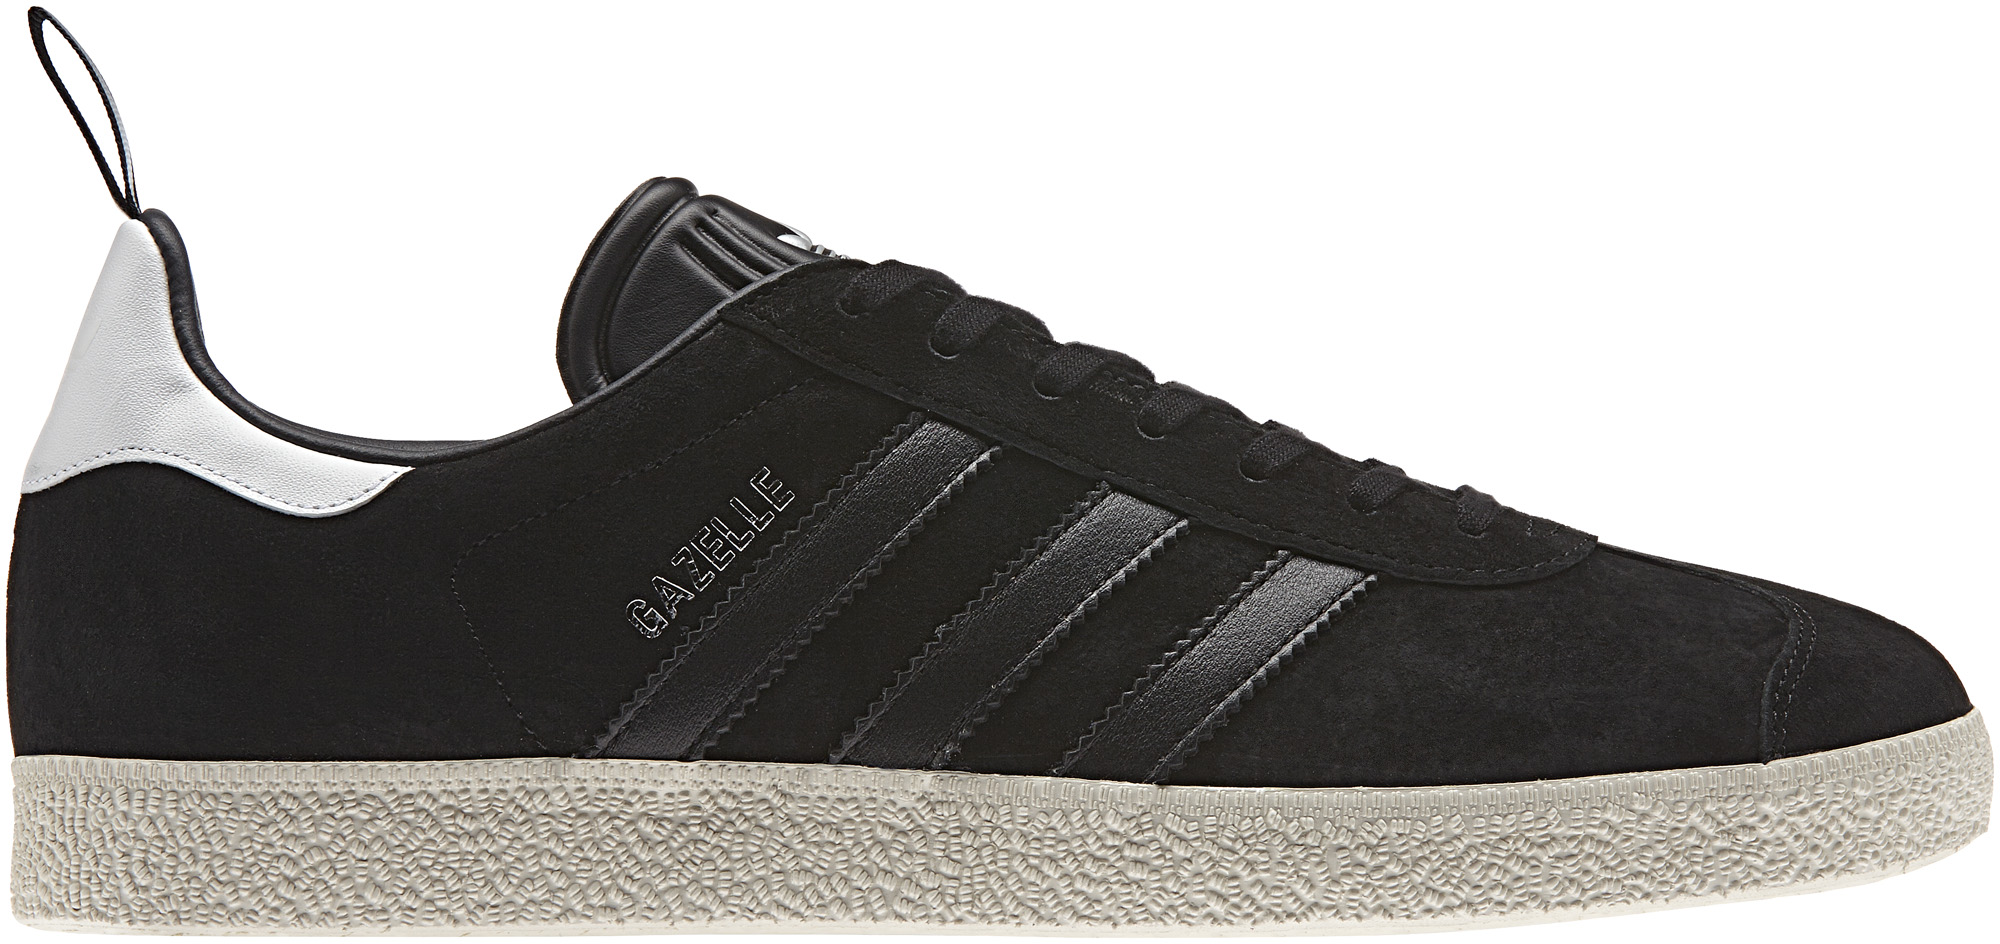 adidas Originals – Gazelle Ostrich Pack 2